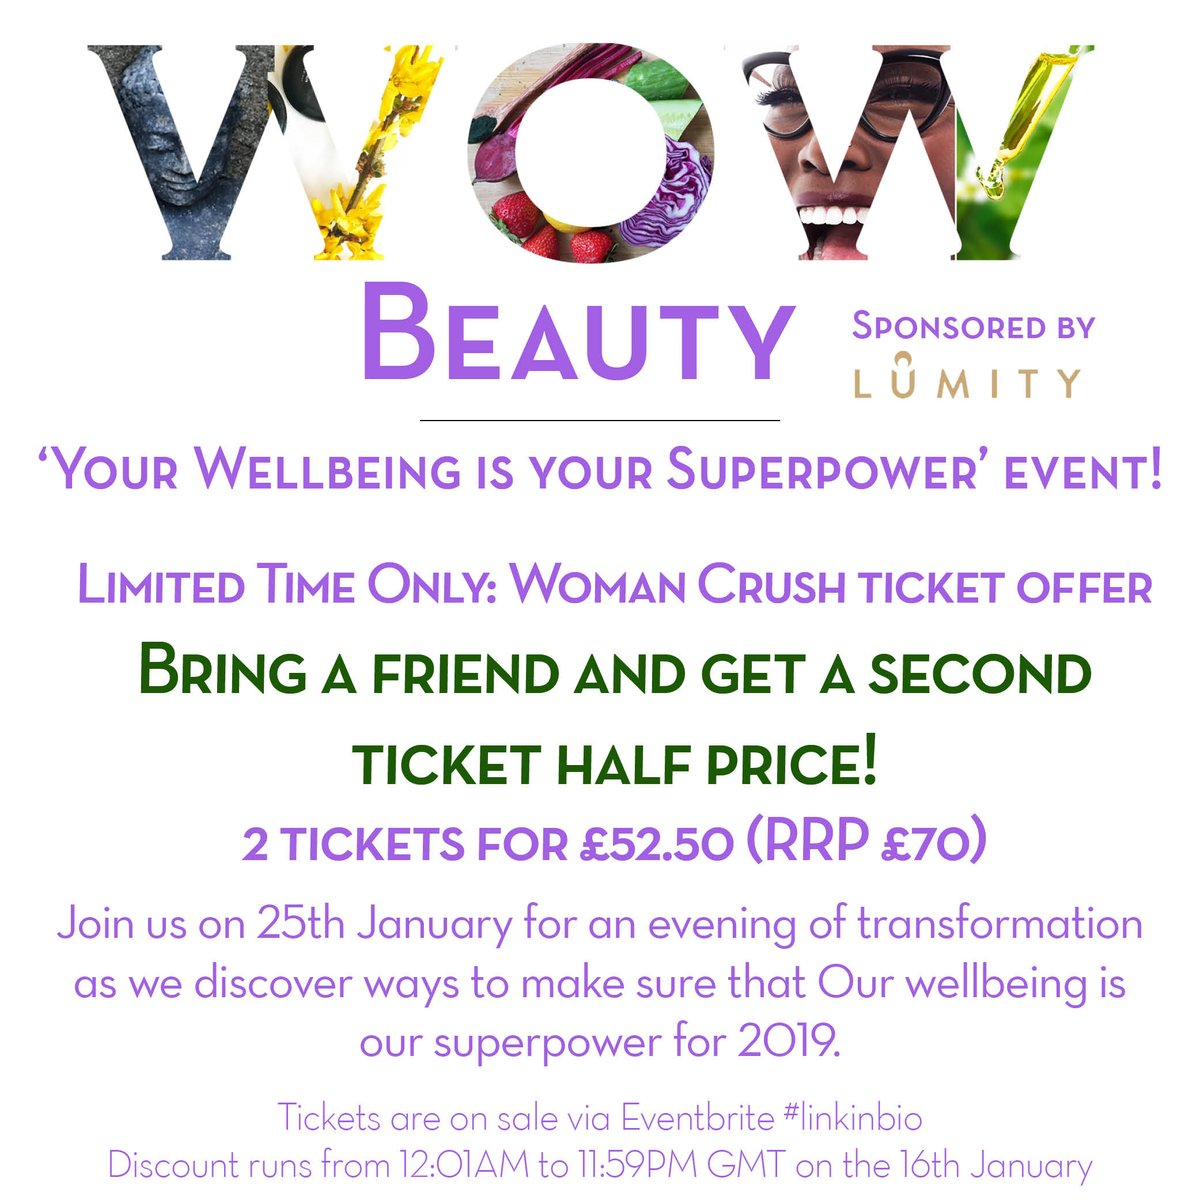 We&#39;re celebrating #womancrushwednesday AND #wellbeingwednesday AND #wellnesswednesday with this #bringafriend offer. if you're serious about your wellbeing and you want to thrive in 2019 #tagafriend &amp; Grab a ticket to join us!  http:// ow.ly/VMjR30nkDYT  &nbsp;    @FemaleBloggerRT<br>http://pic.twitter.com/n0bVTbYGhy